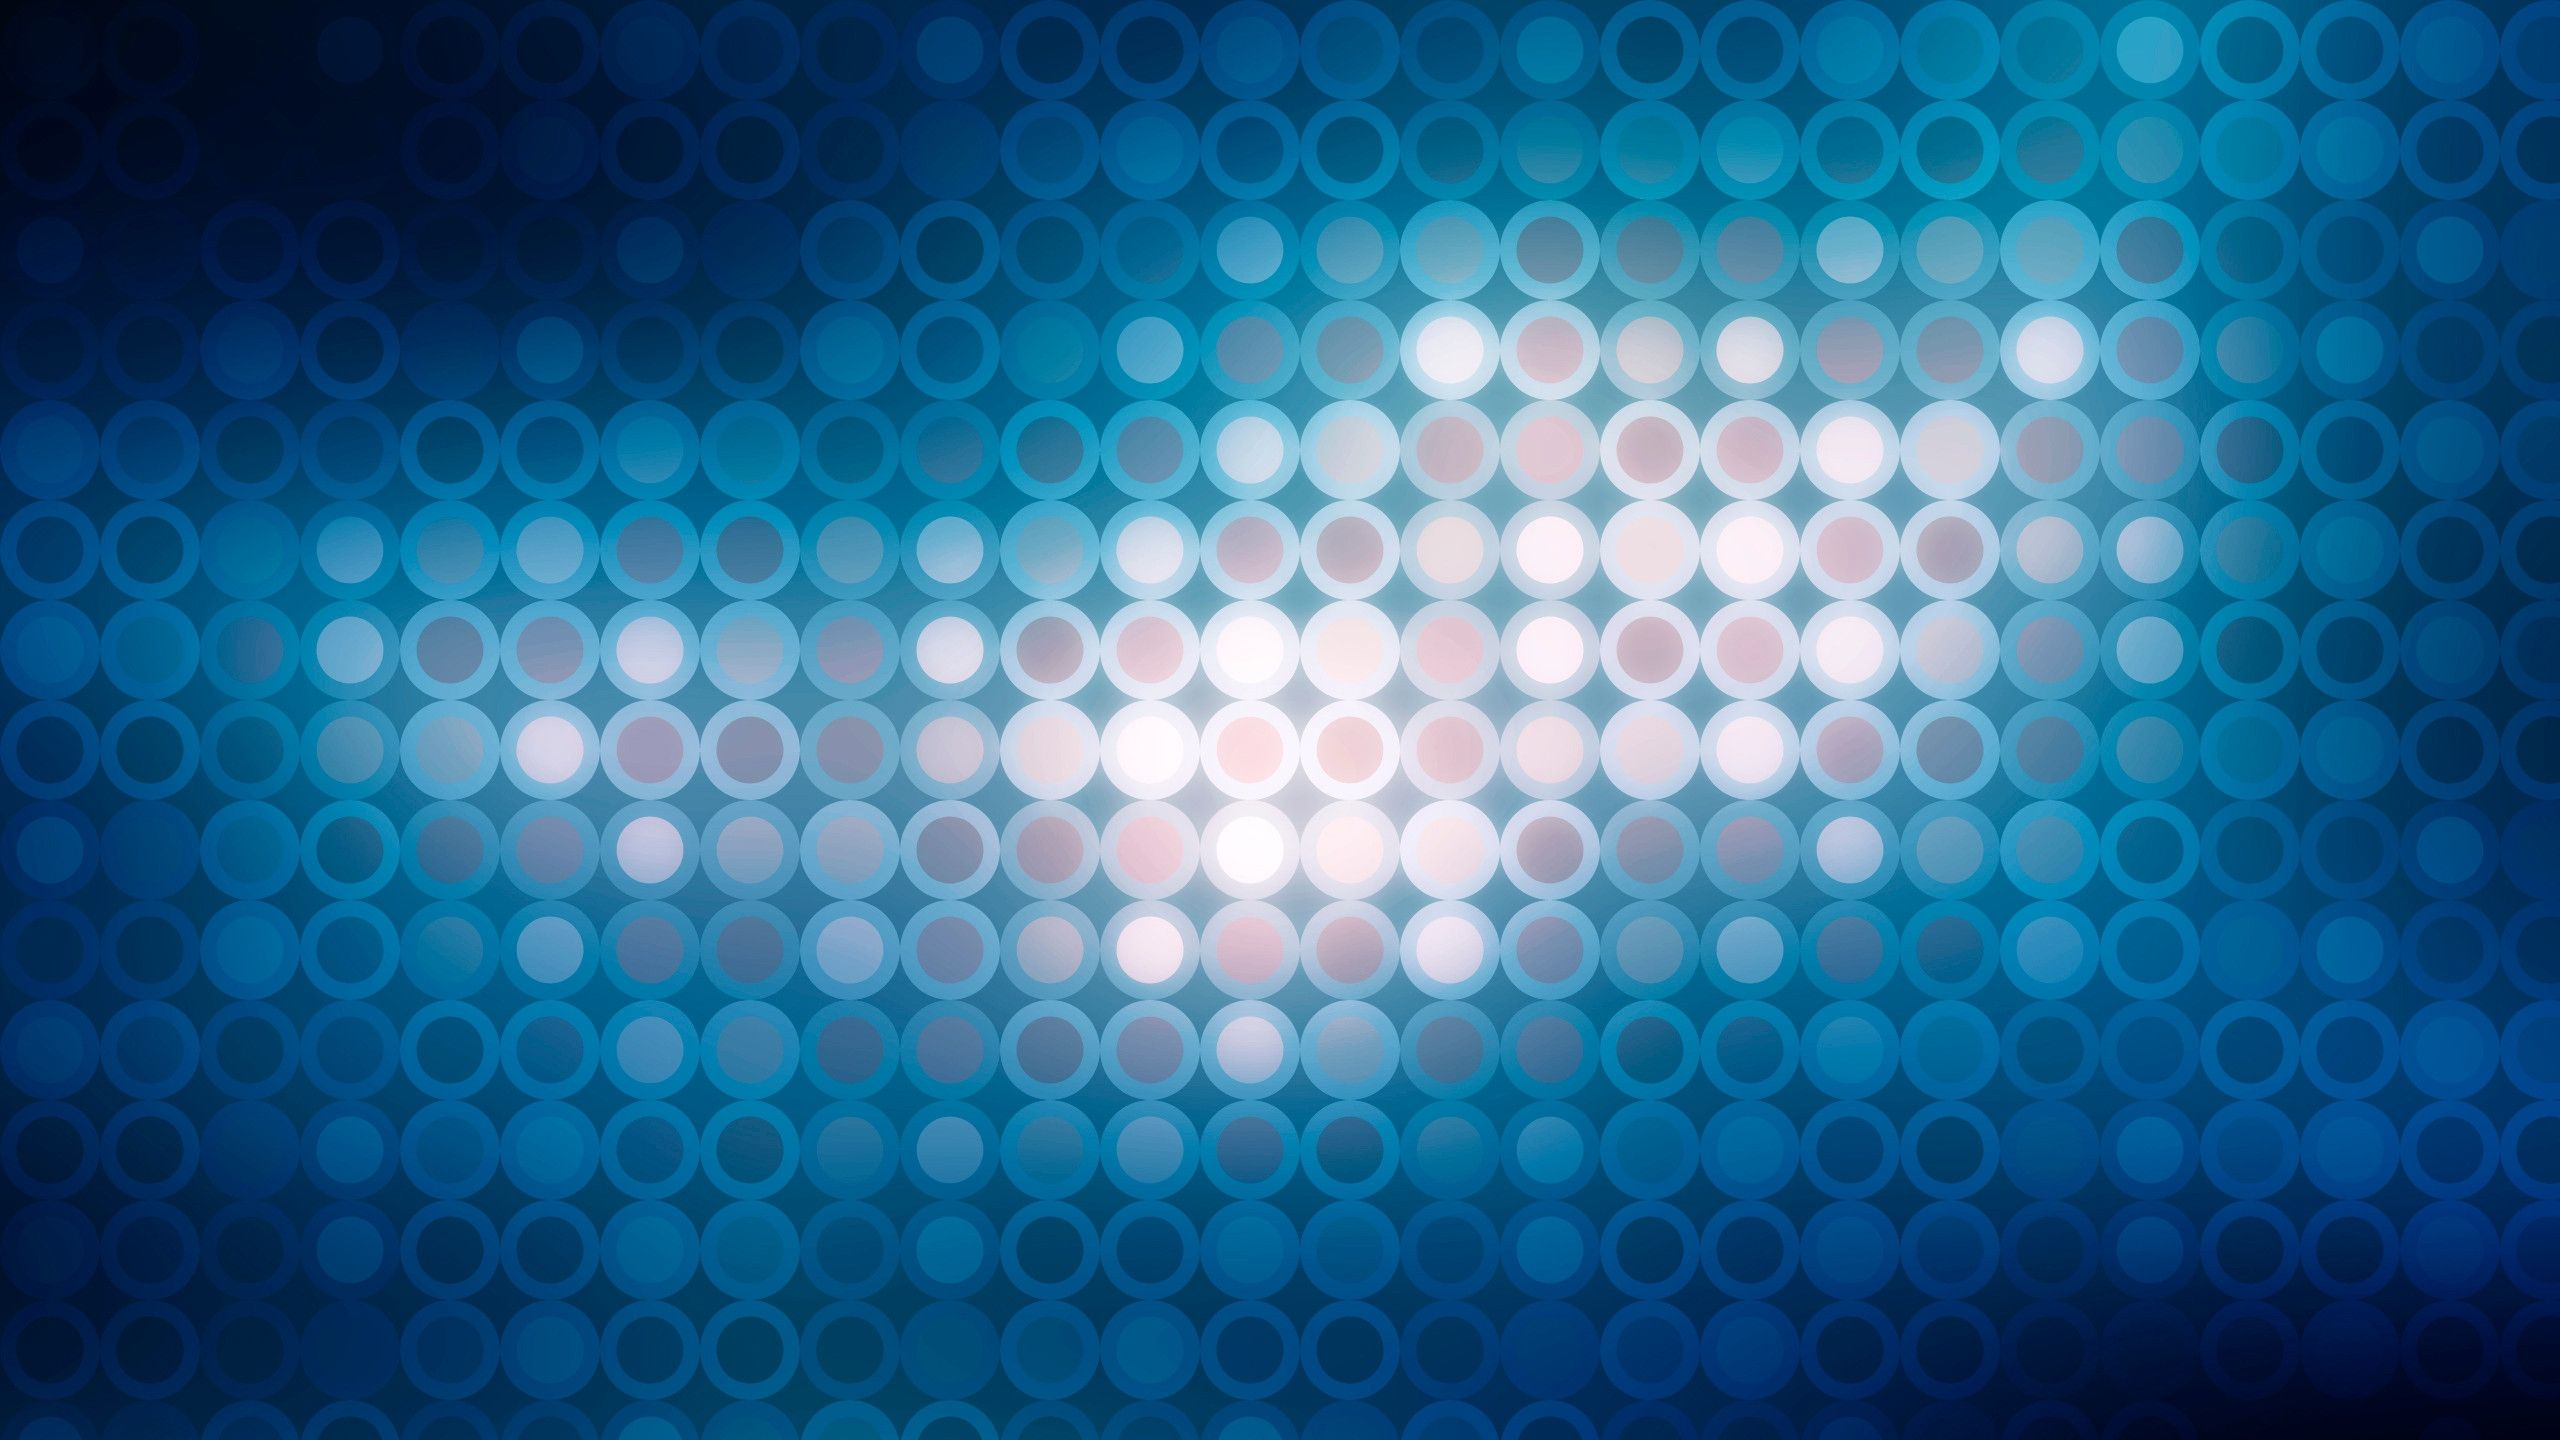 Poster Background Design Hd Lastest Collection Of Design Backgrounds Design High Definition Poster Background Design Polka Dots Wallpaper Digital Wallpaper